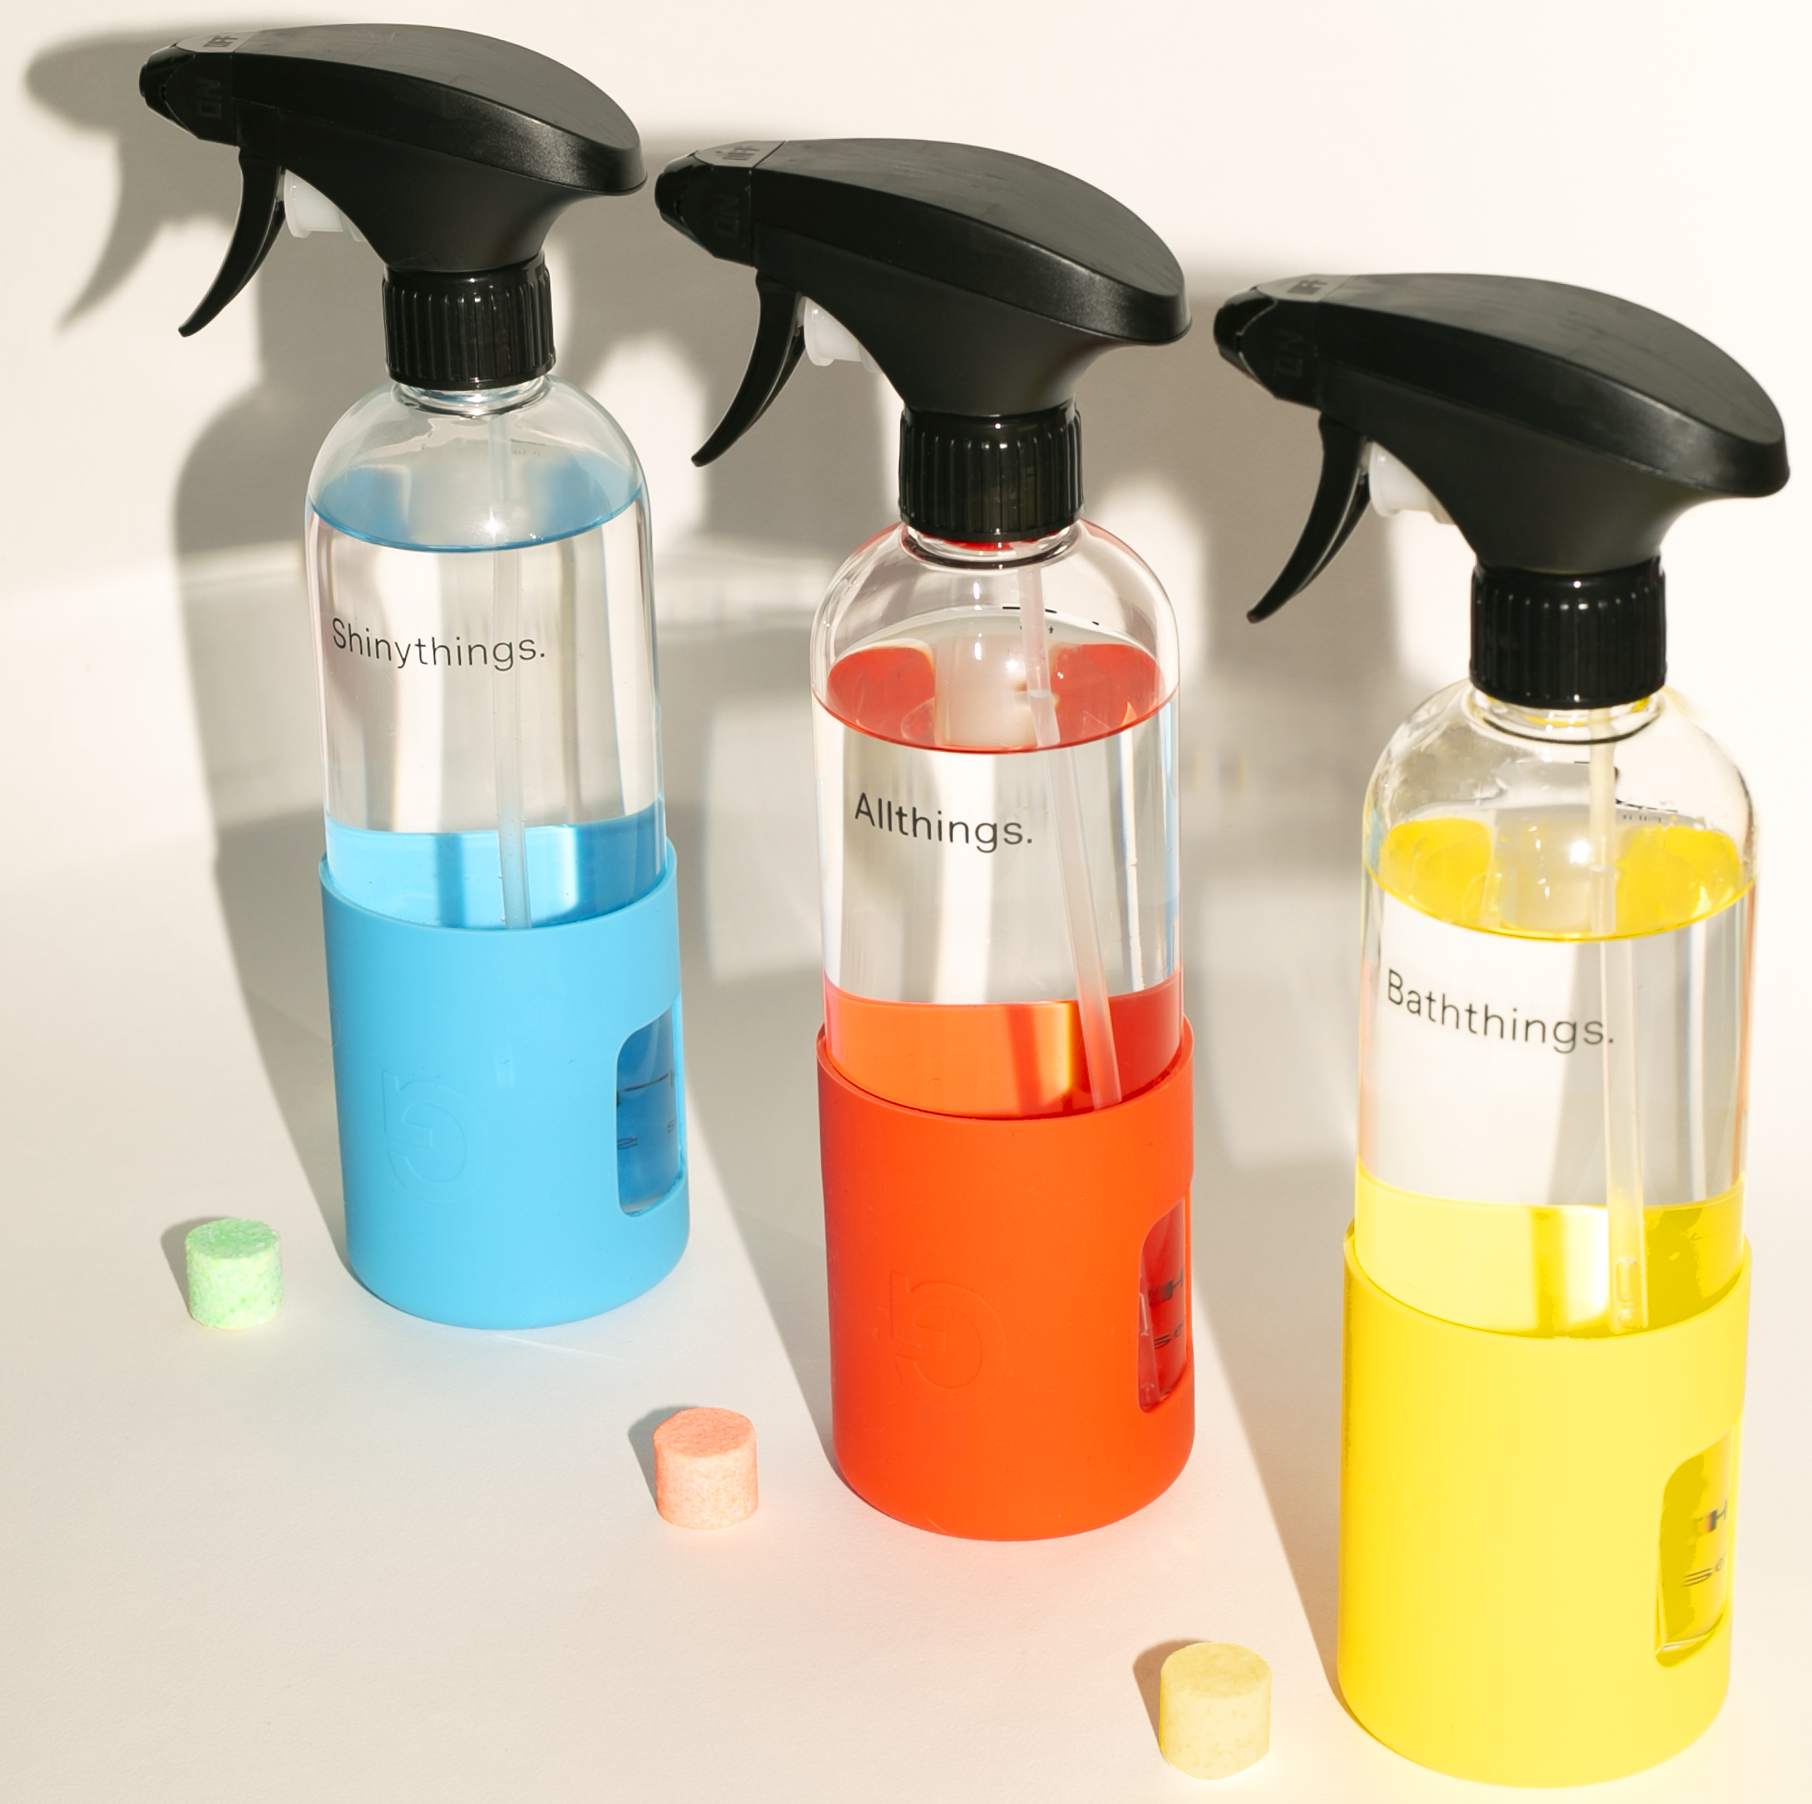 Bottles and cleaning tabs